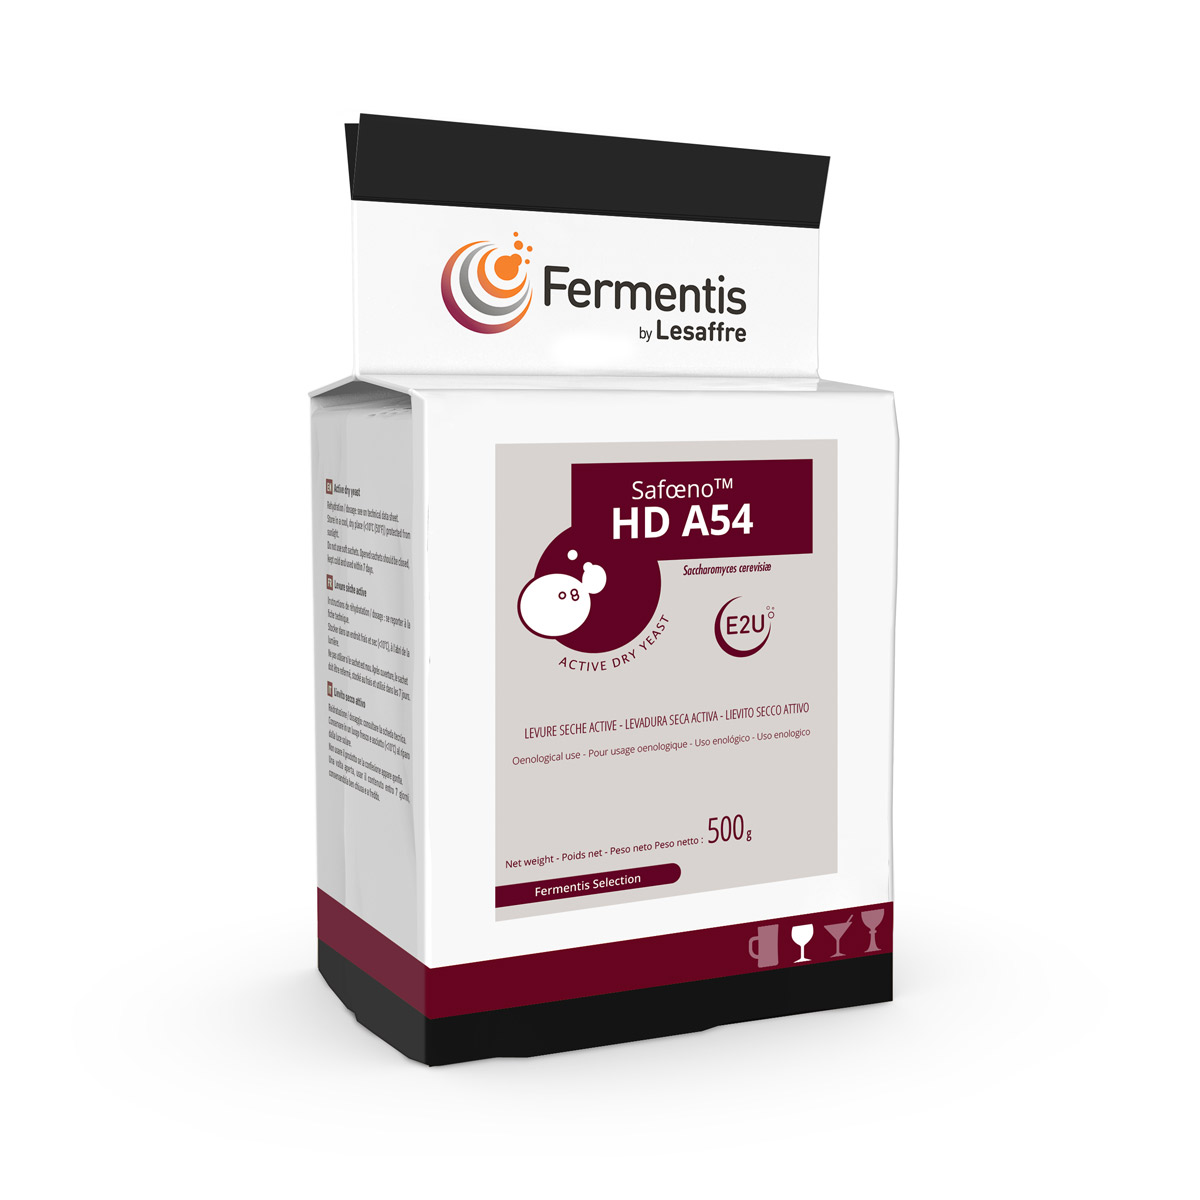 SafOeno HD A54 wine yeast pack by fermentis